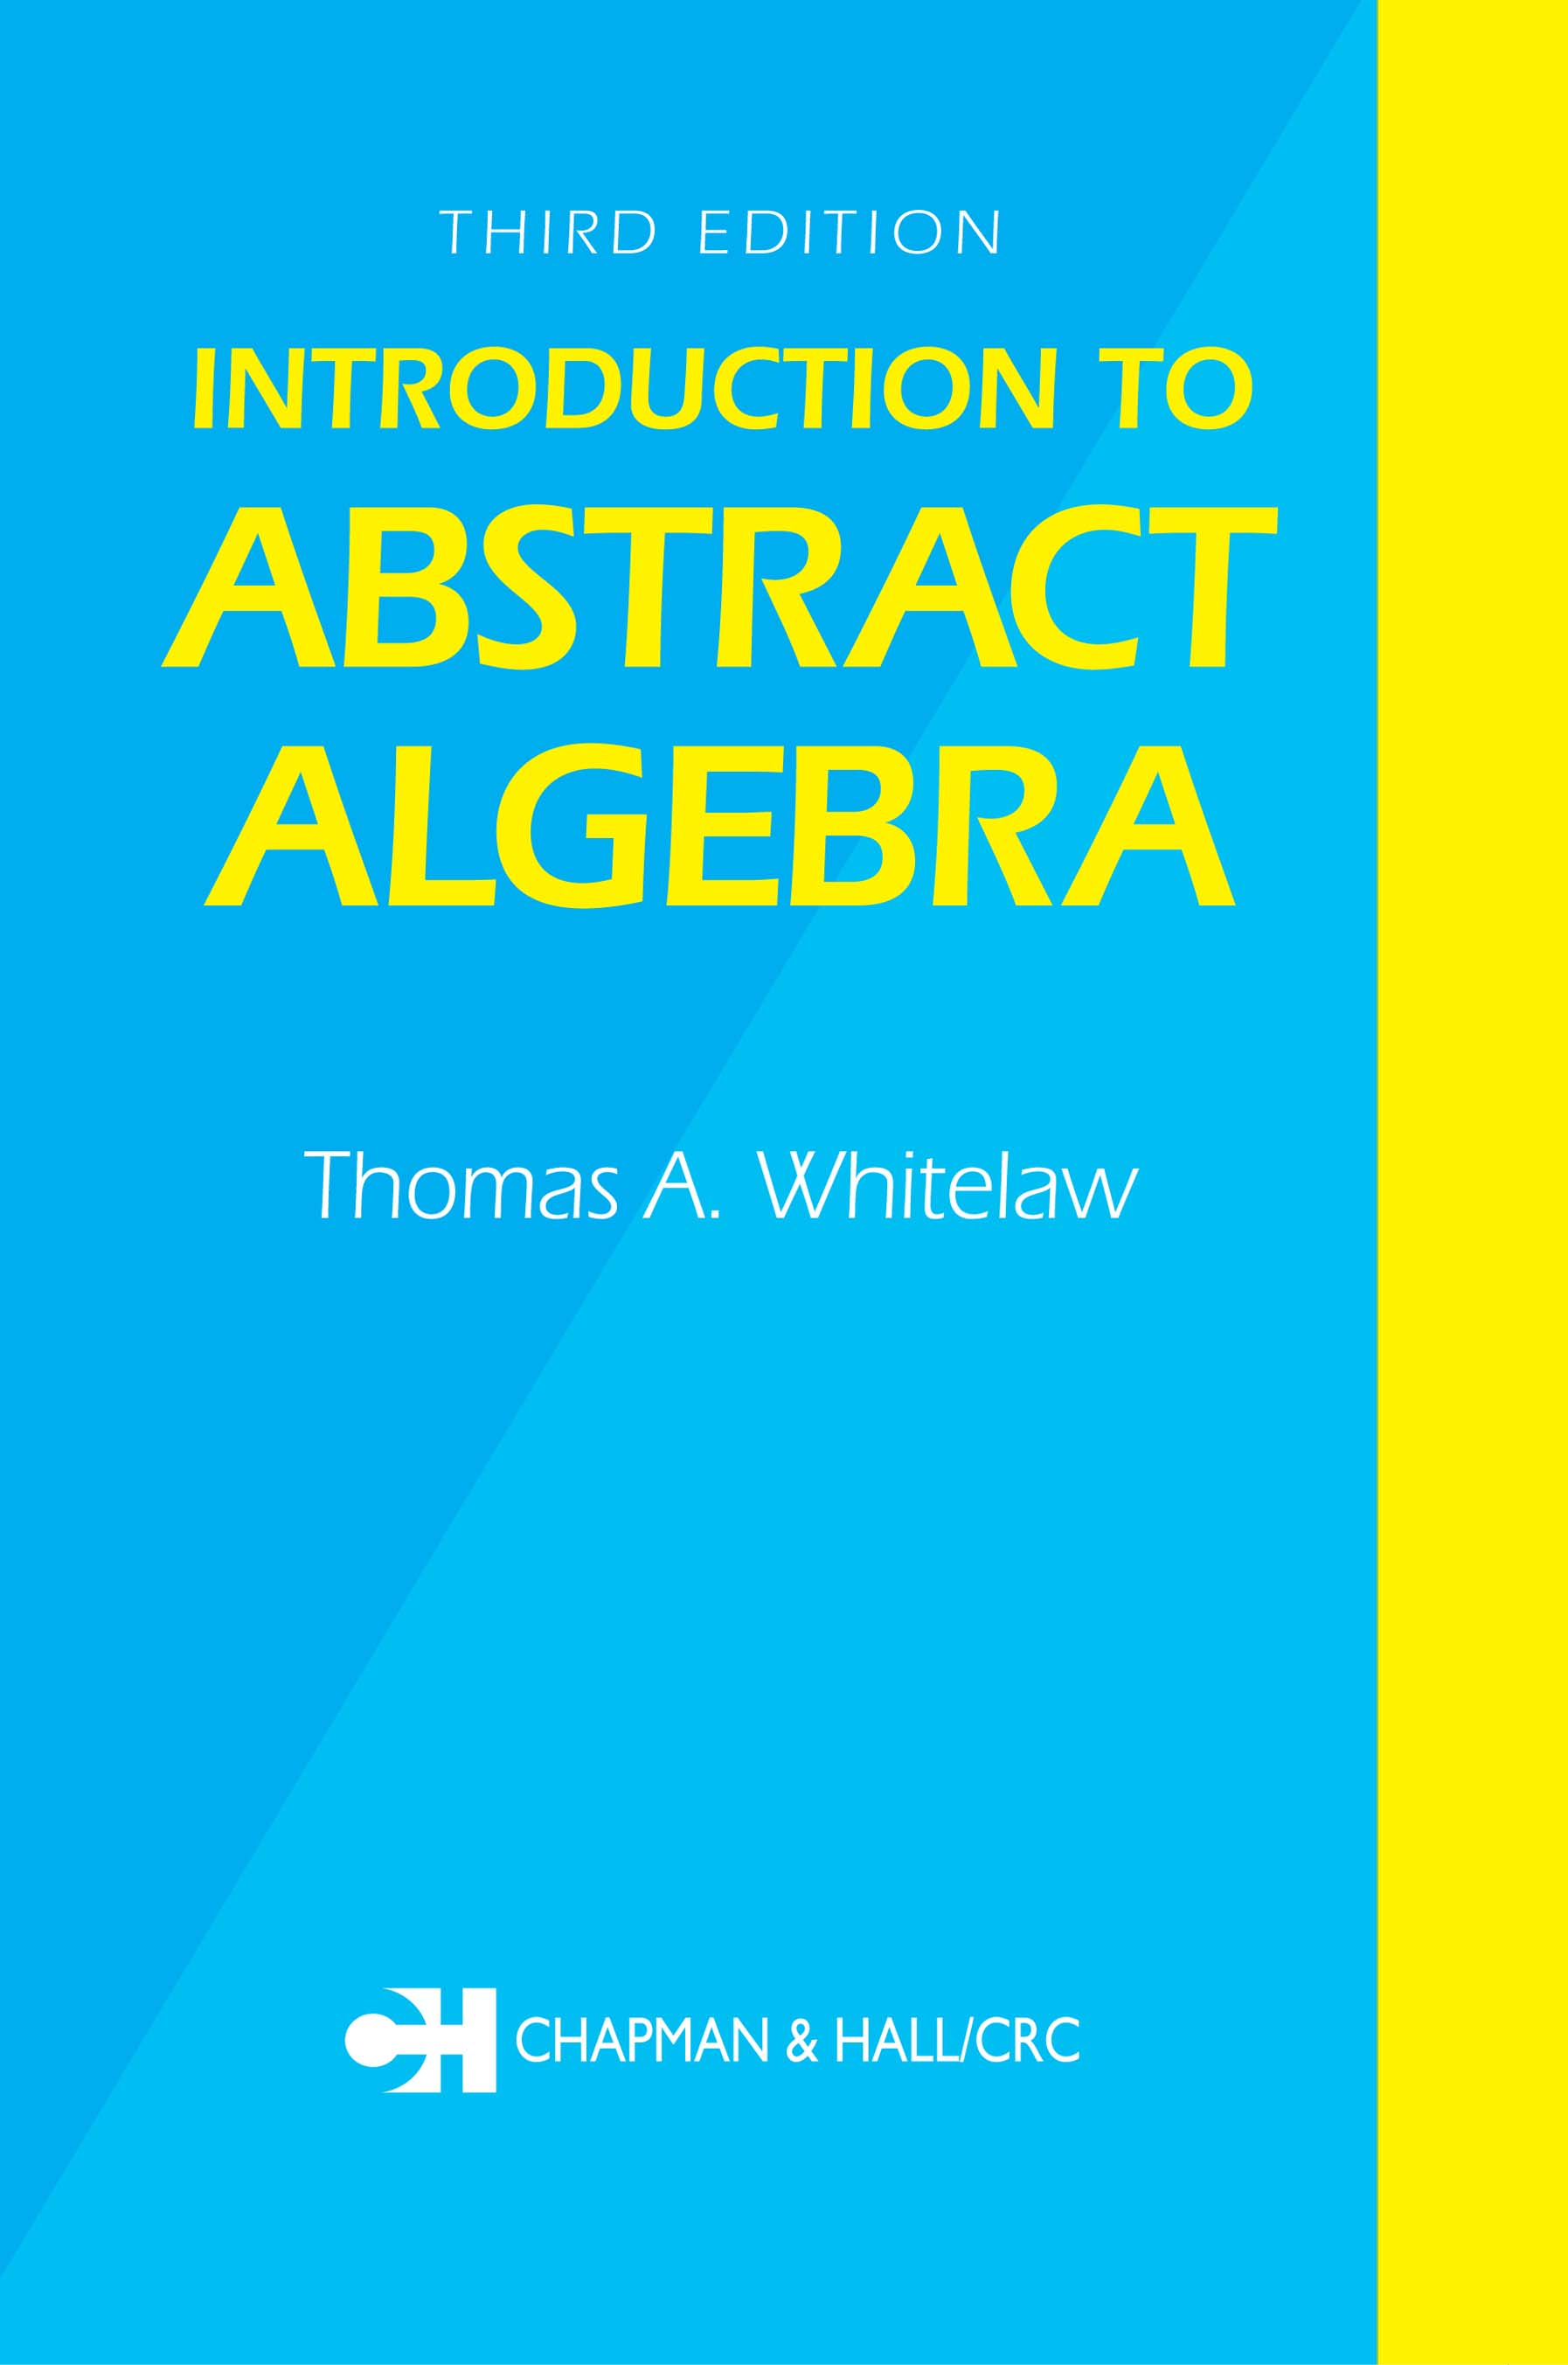 Introduction to Abstract Algebra, Third Edition: 1st Edition (Paperback) book cover